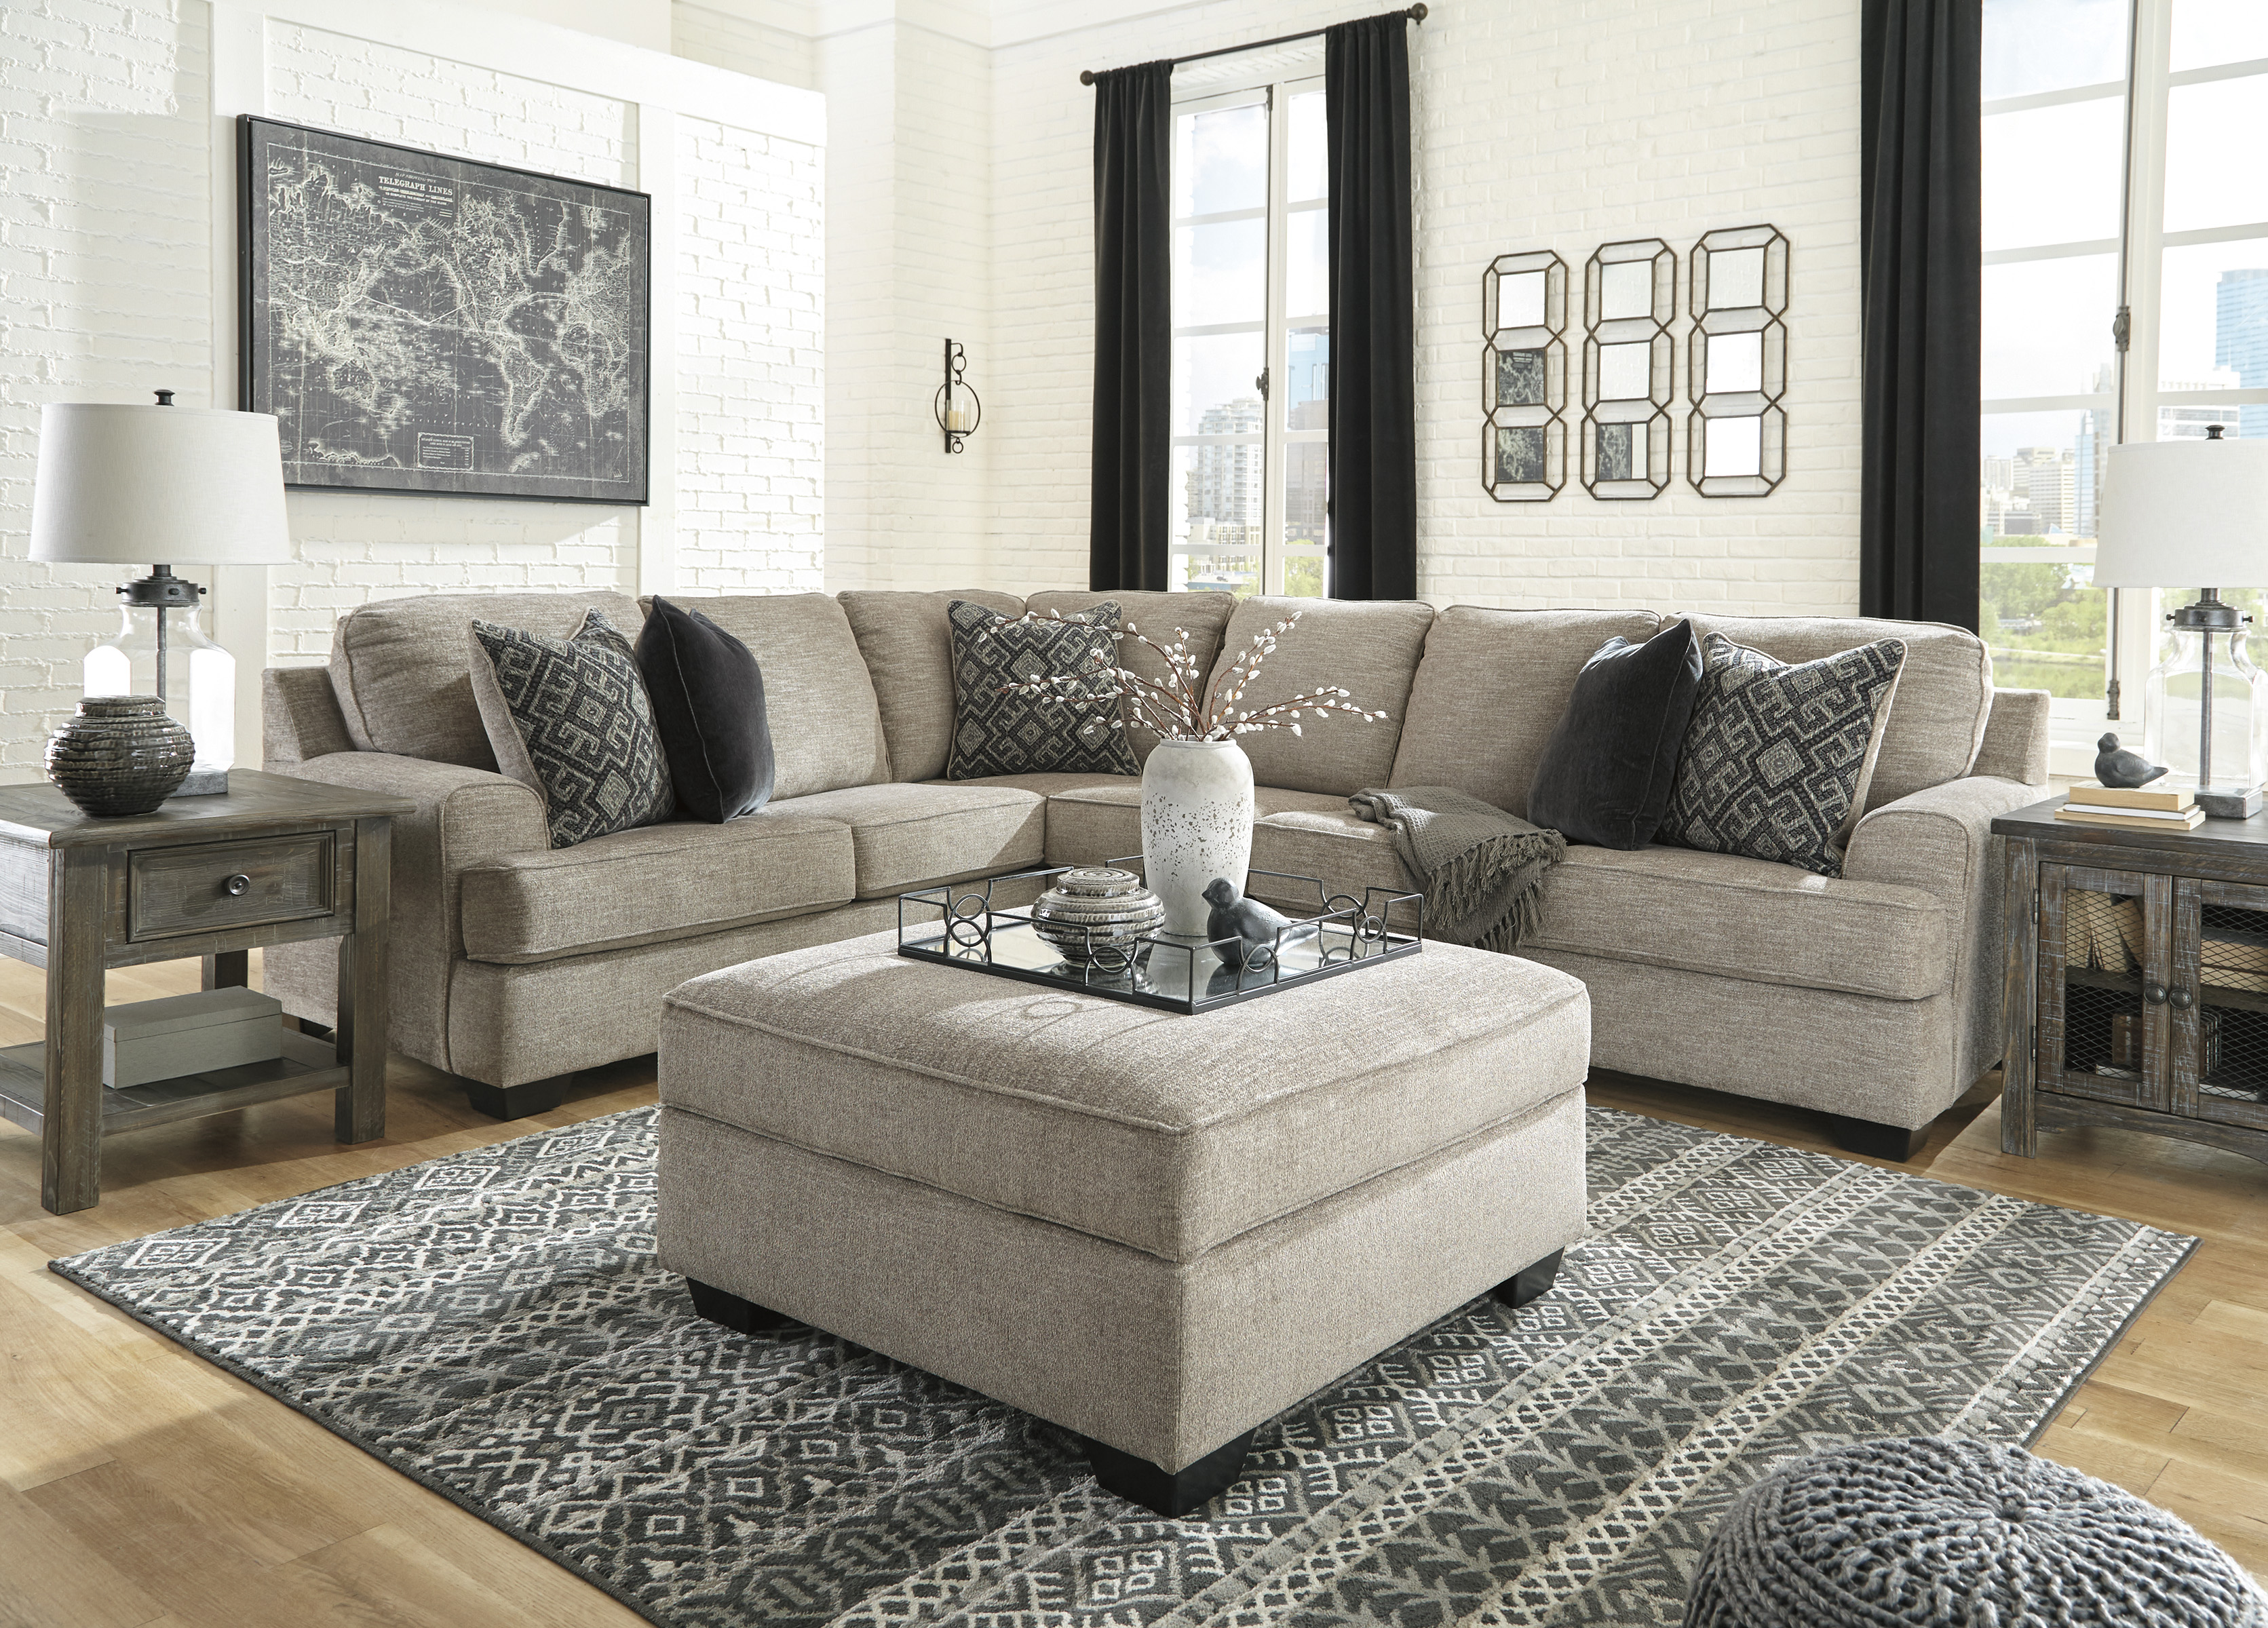 Bovarian Stone 3pc Raf Sofa Sectional Lexington Overstock Warehouse